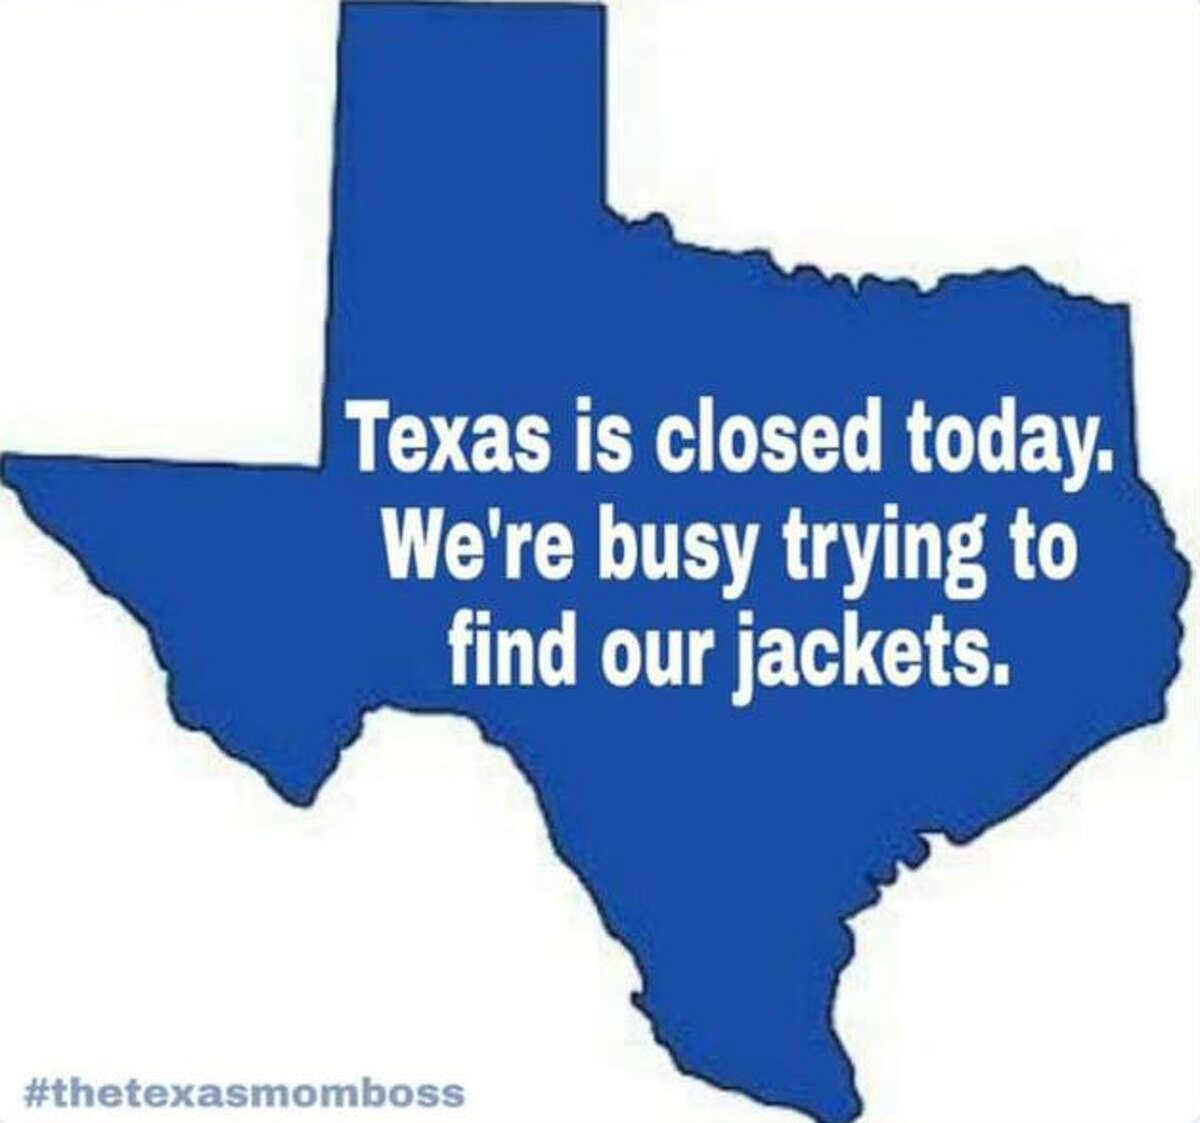 Texans took to Twitter when the cold front came through.